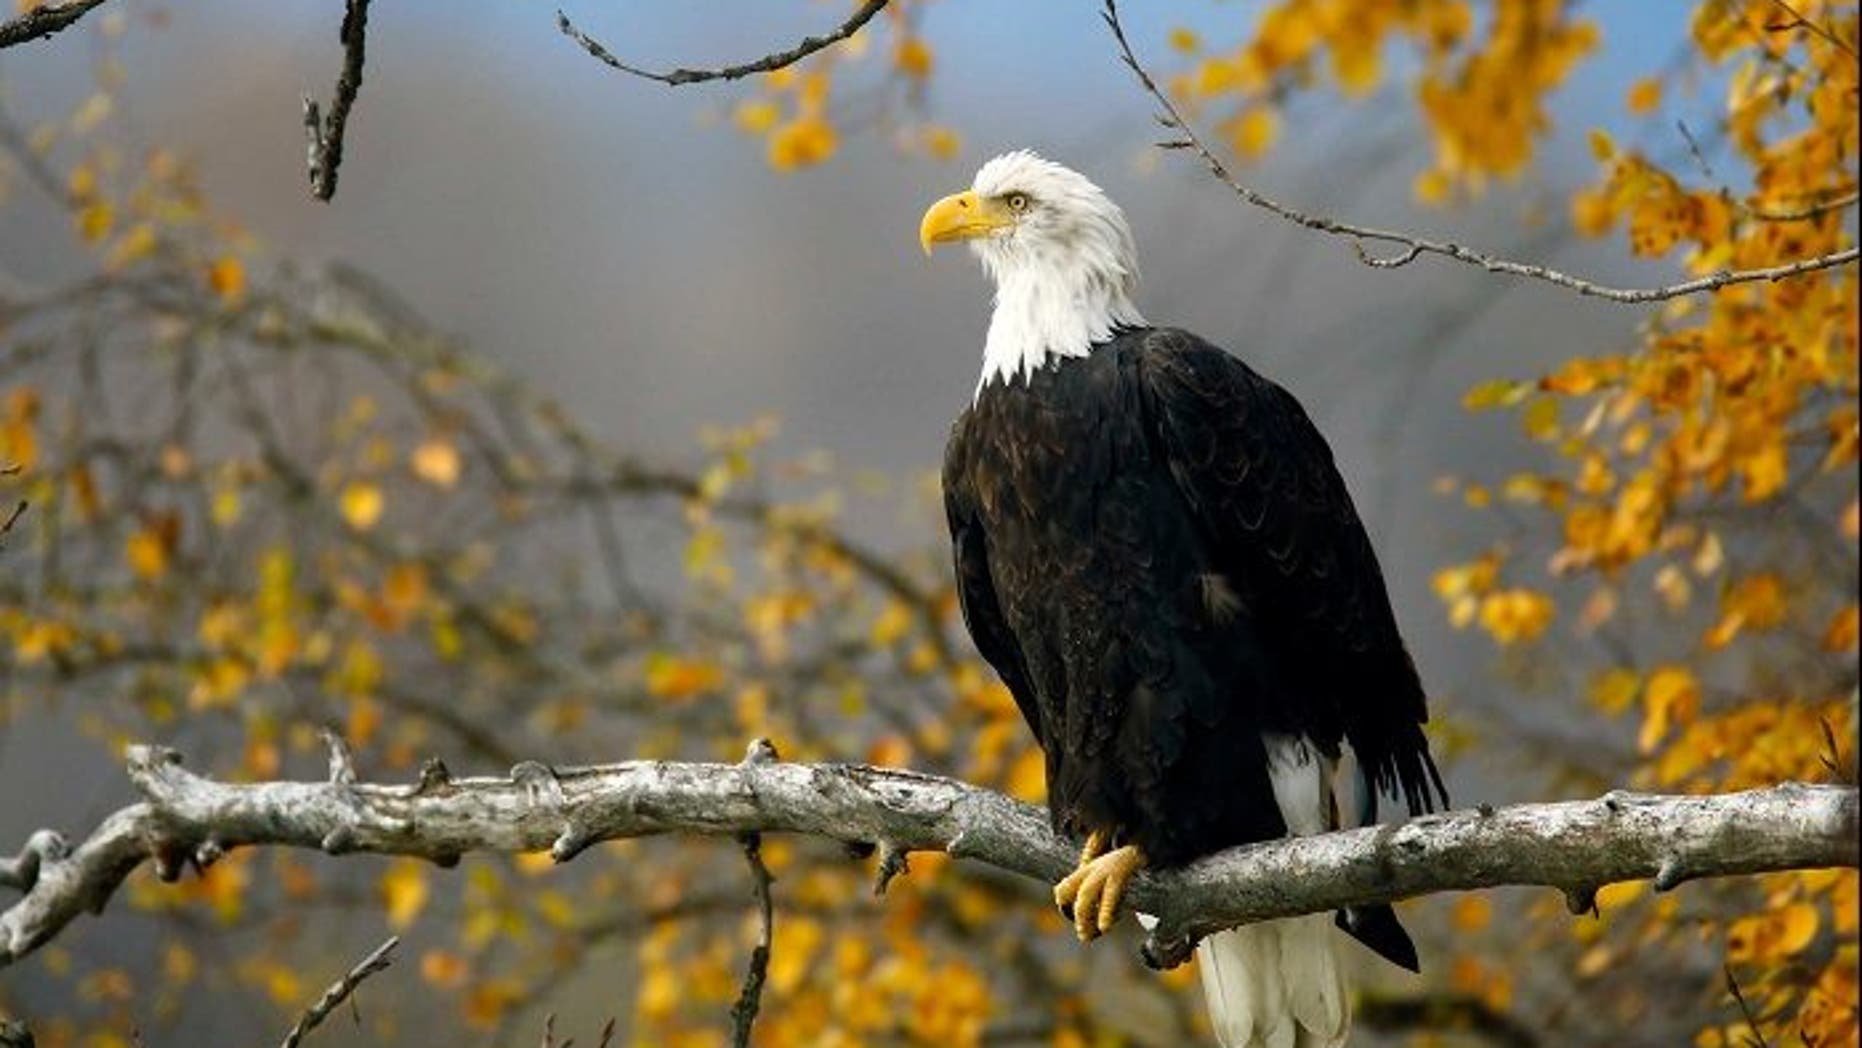 A bald eagle sits in a tree in the Chilkat Bald Eagle Preserve near Haines, Alaska October 8, 2014.   REUTERS/Bob Strong/File Photo - RC1306153200